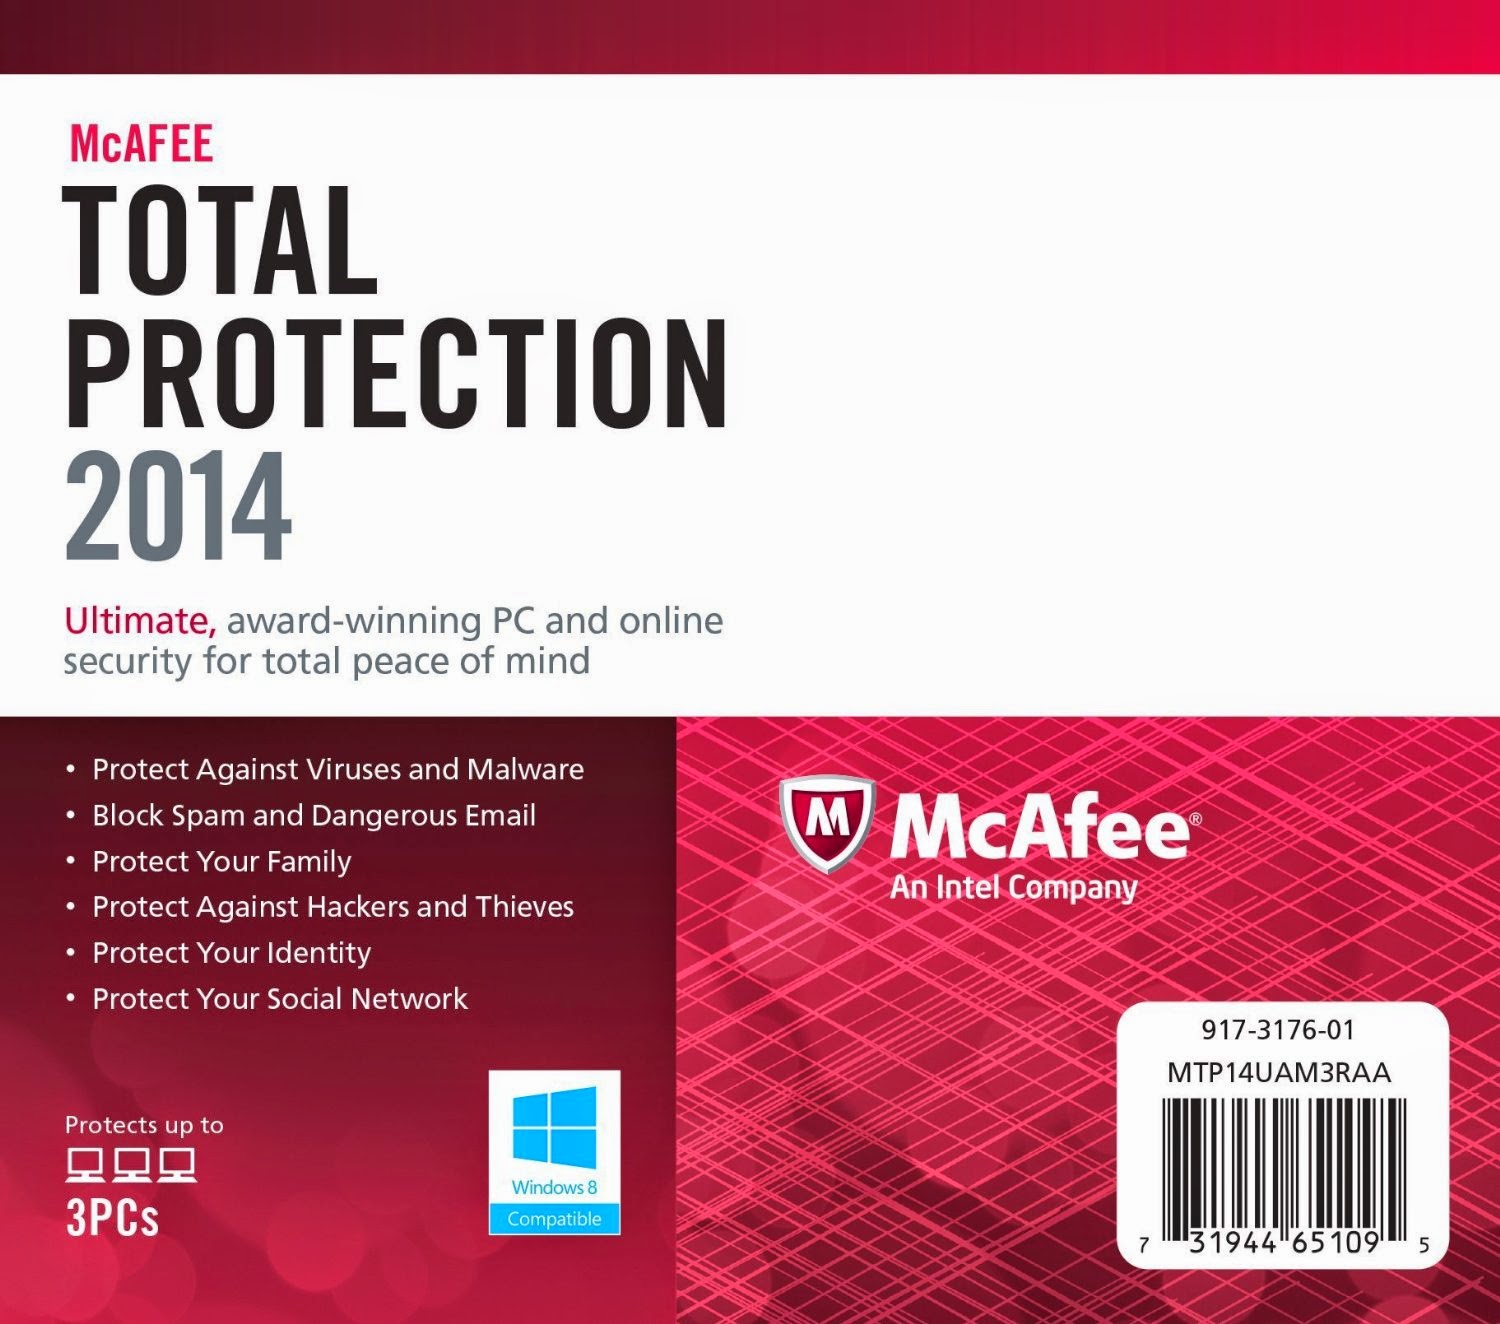 cannot open mcafee total protection